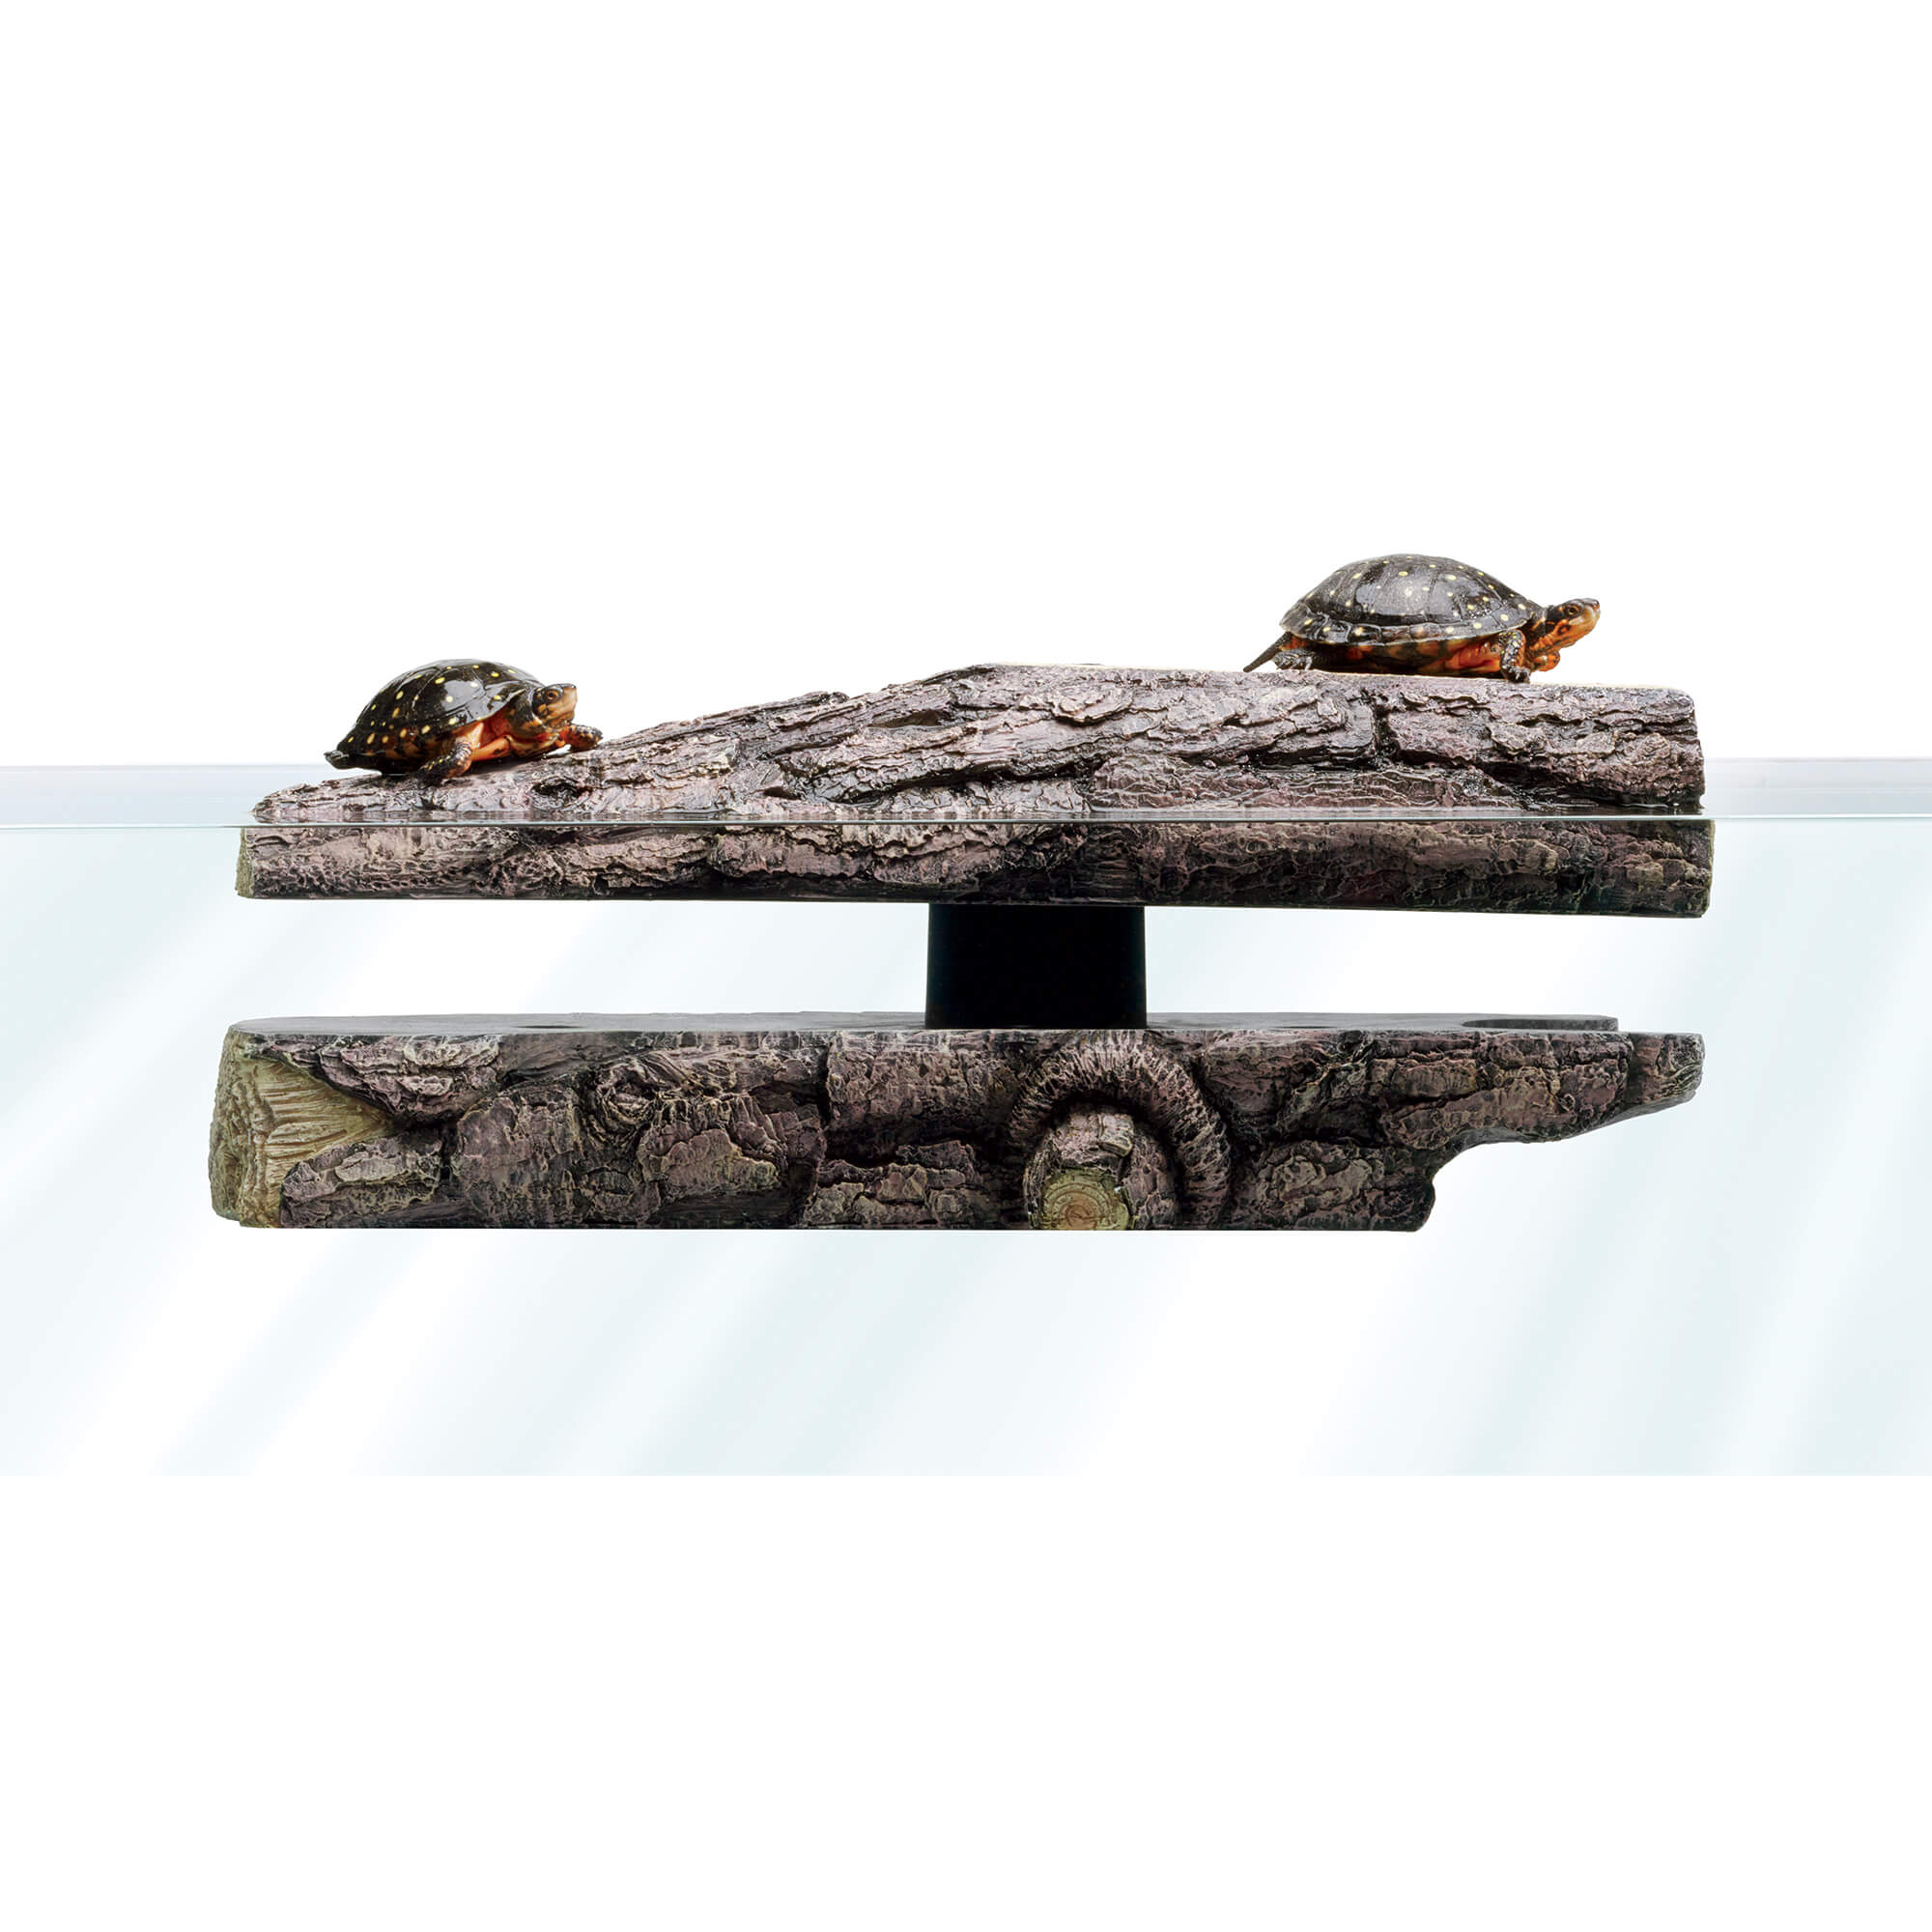 Log shaped decor piece with floating top and turtles basking